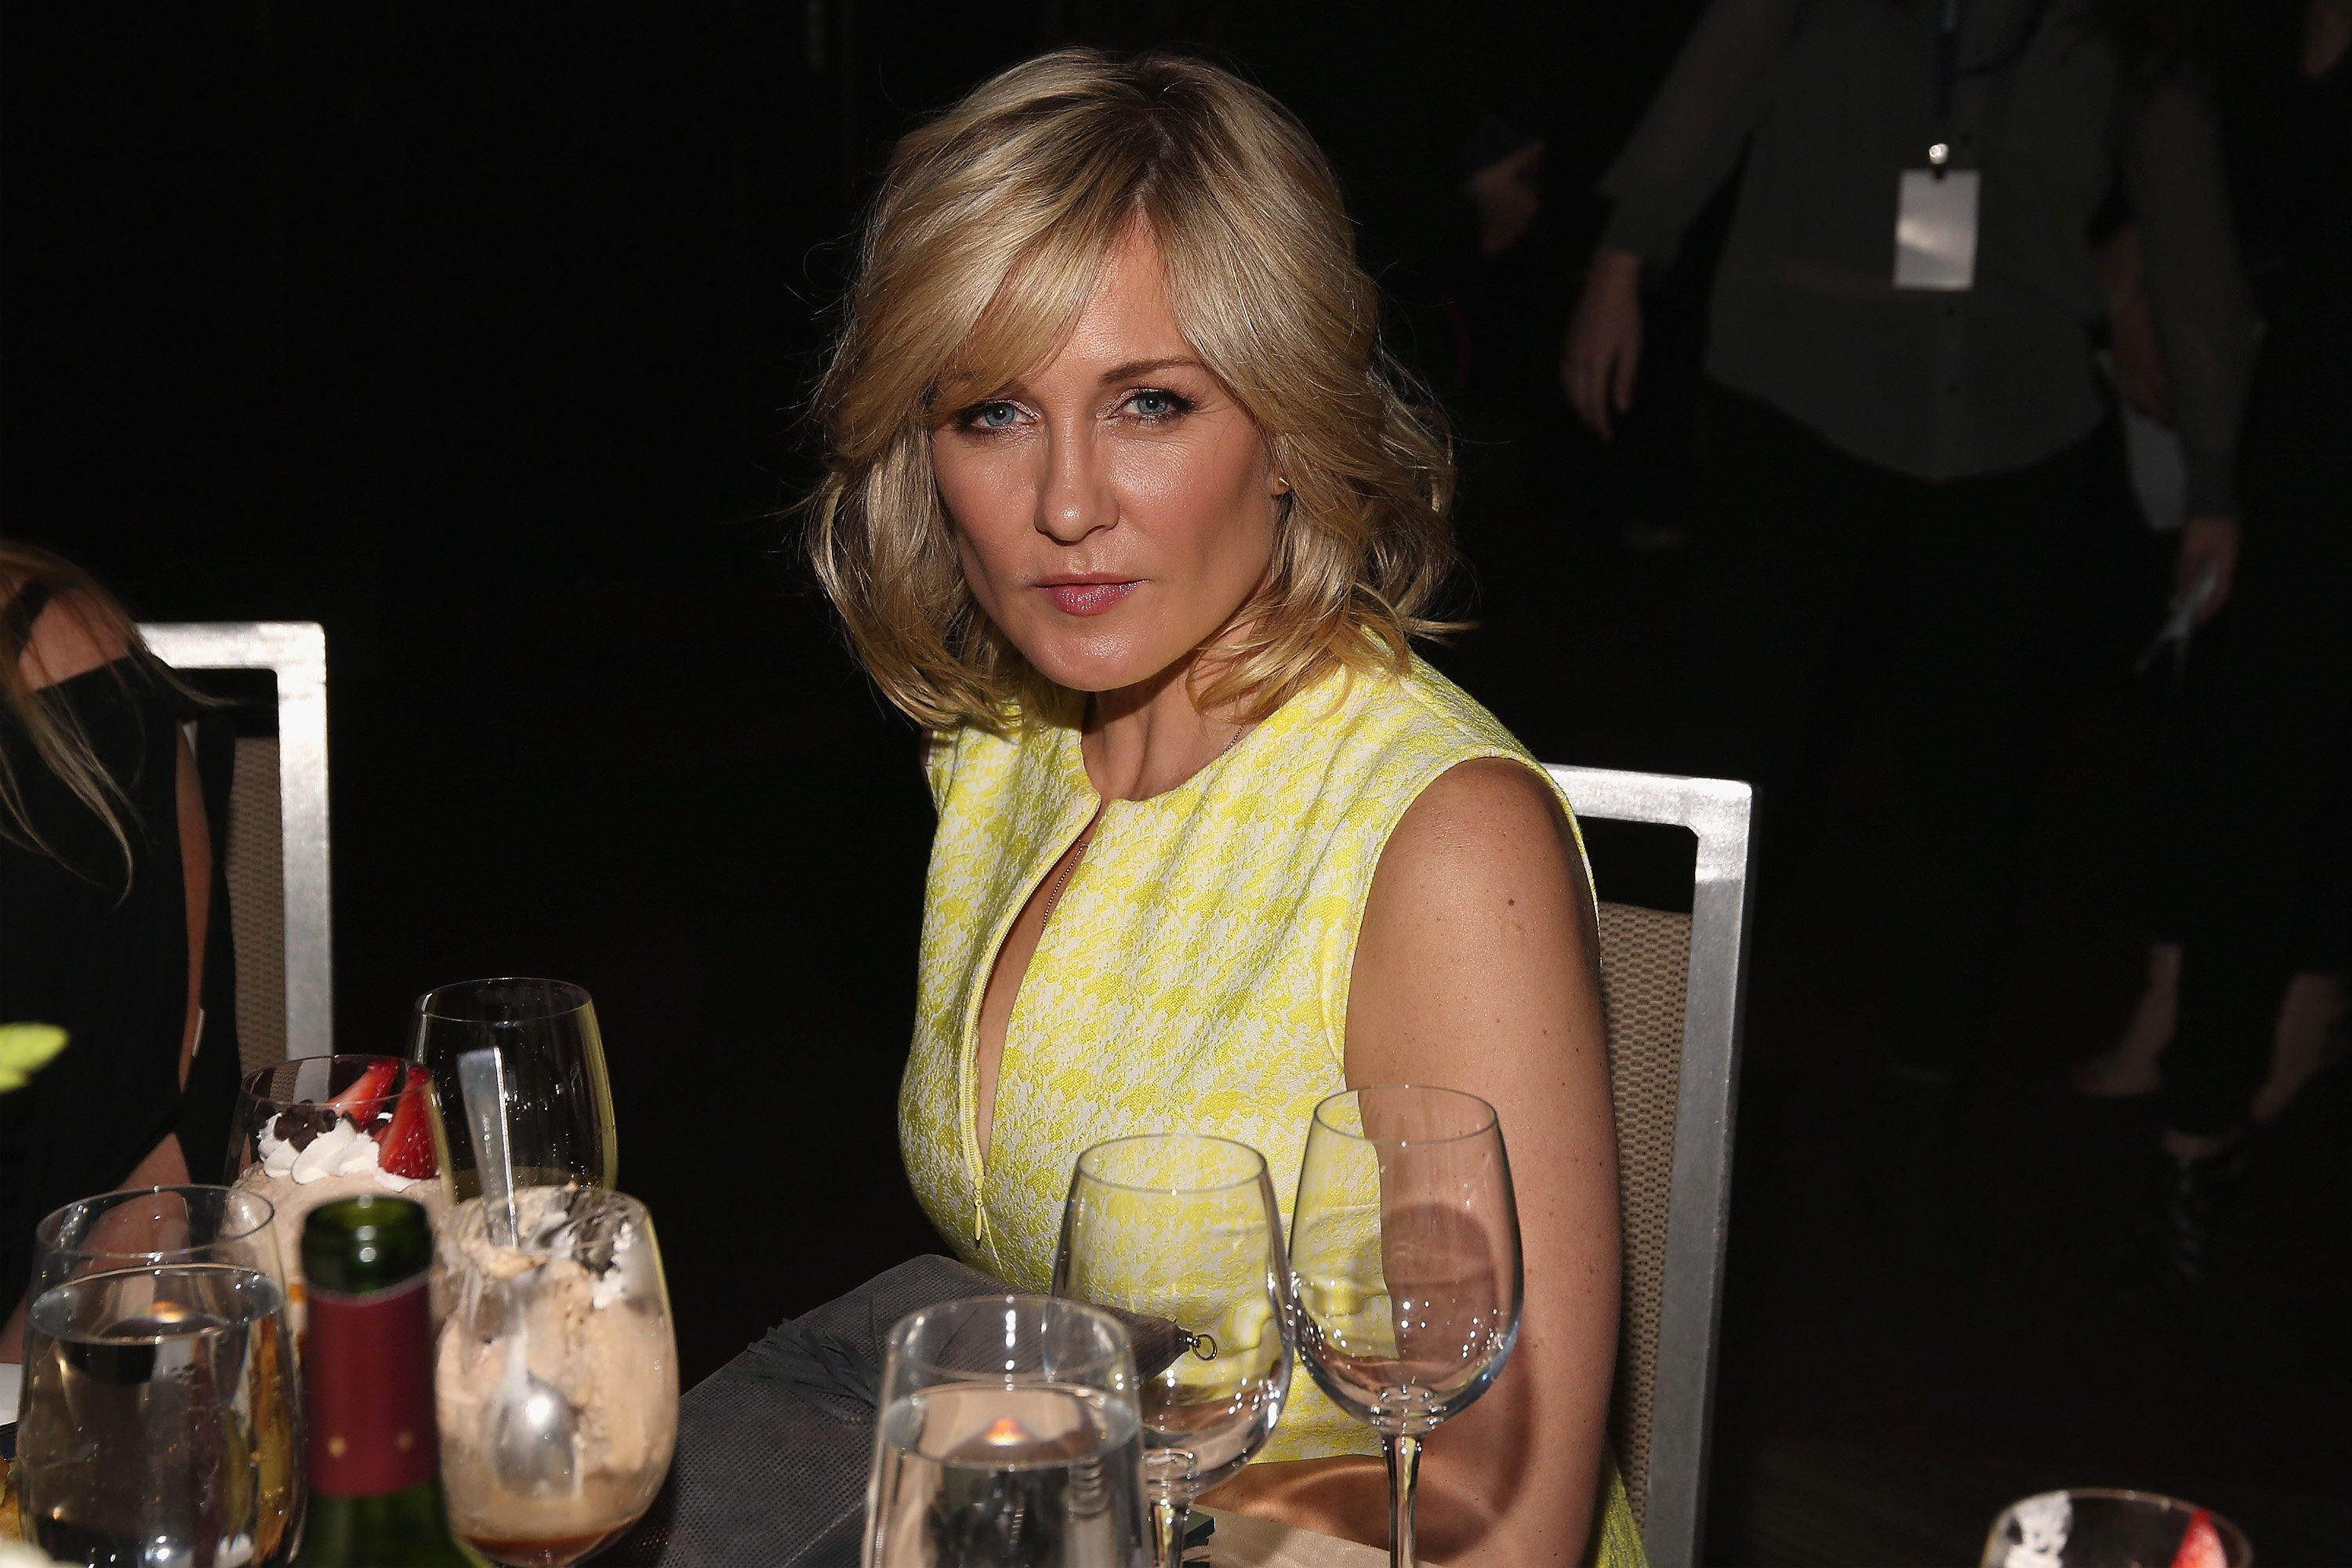 Amy Carlson attends the Federal Enforcement Homeland Security Foundation 2016 Ridge Awards at Sheraton Times Square on May 19, 2016 in New York City | Photo: GettyImages